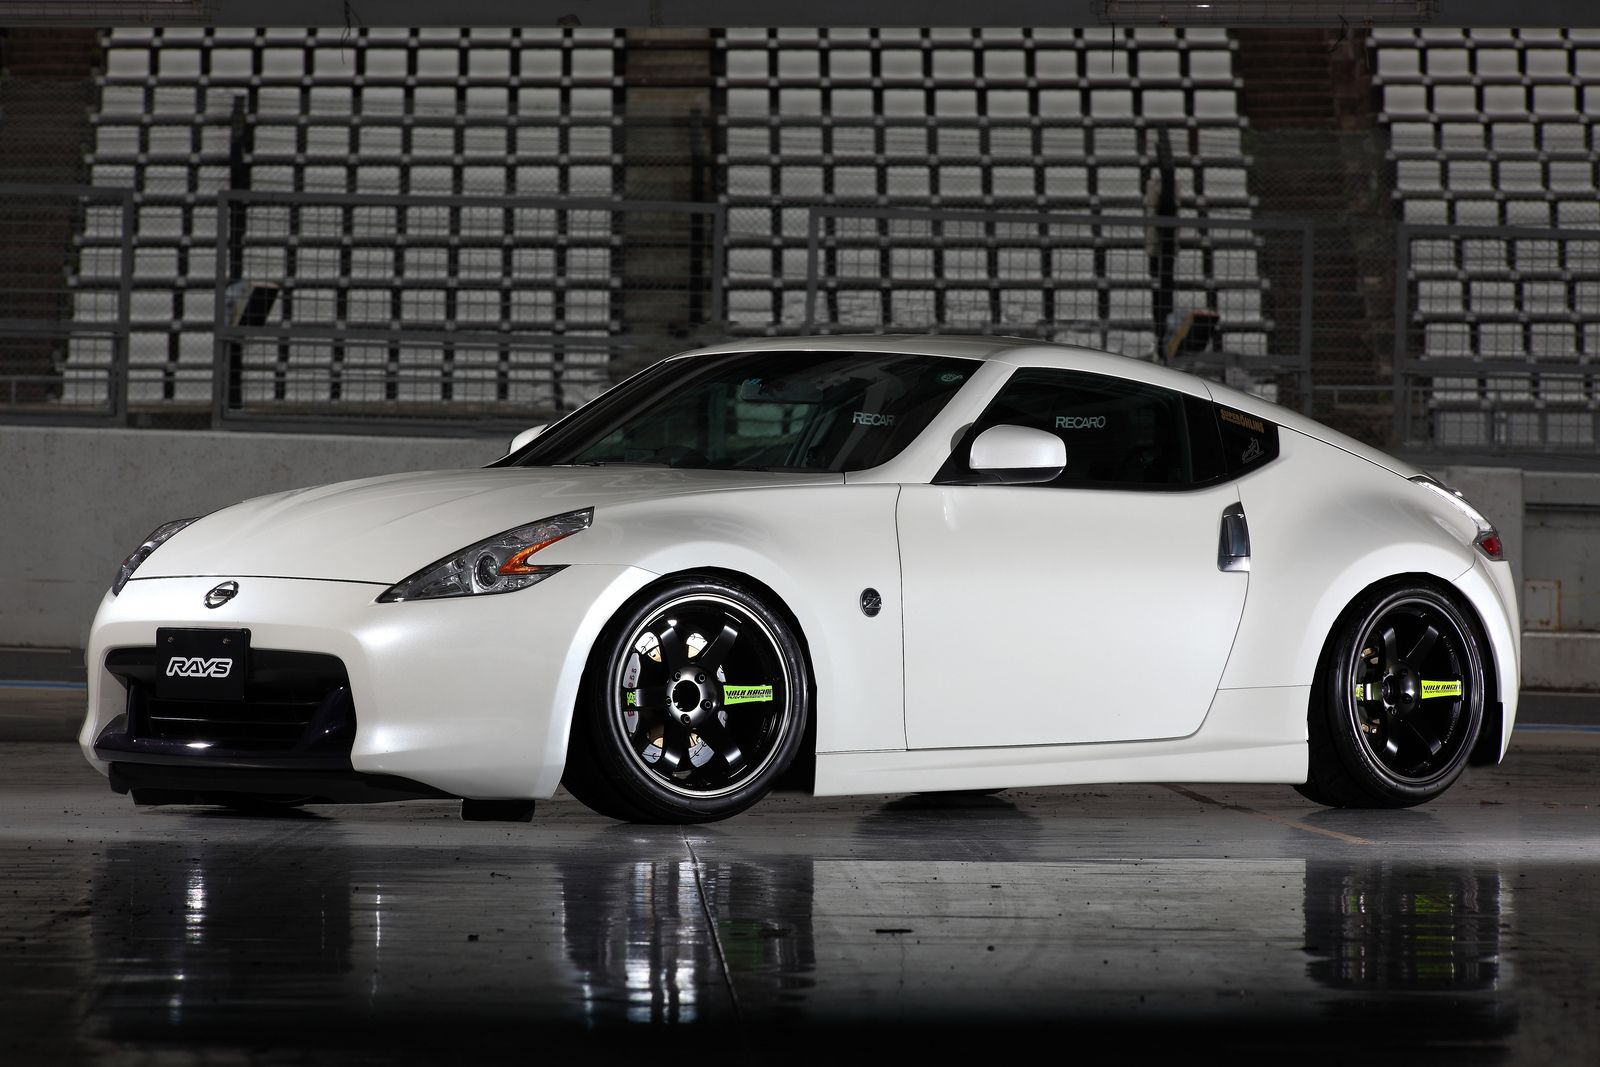 Nissan 370z roadster white google 350z pinterest nissan 370z roadster white google 350z pinterest nissan 370z nissan and cars vanachro Image collections